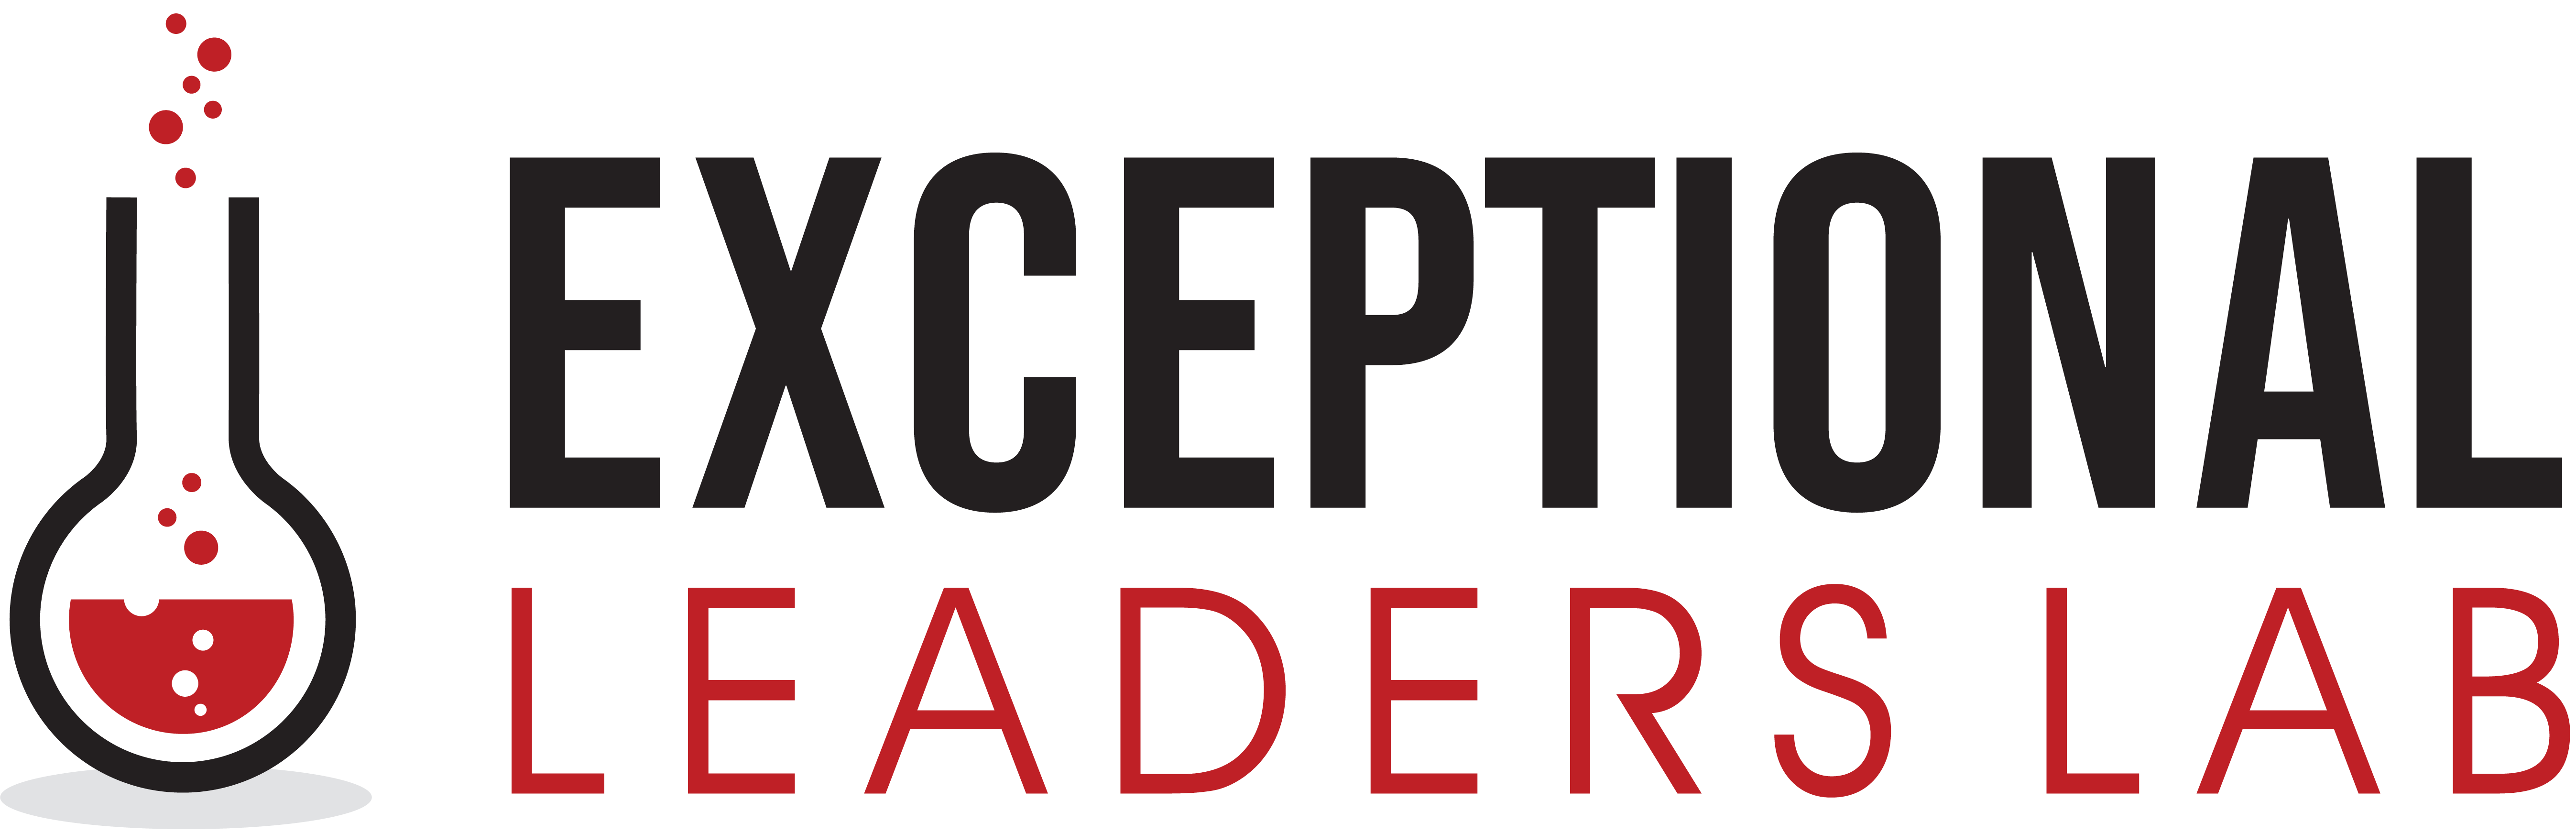 Exceptional Leaders Lab